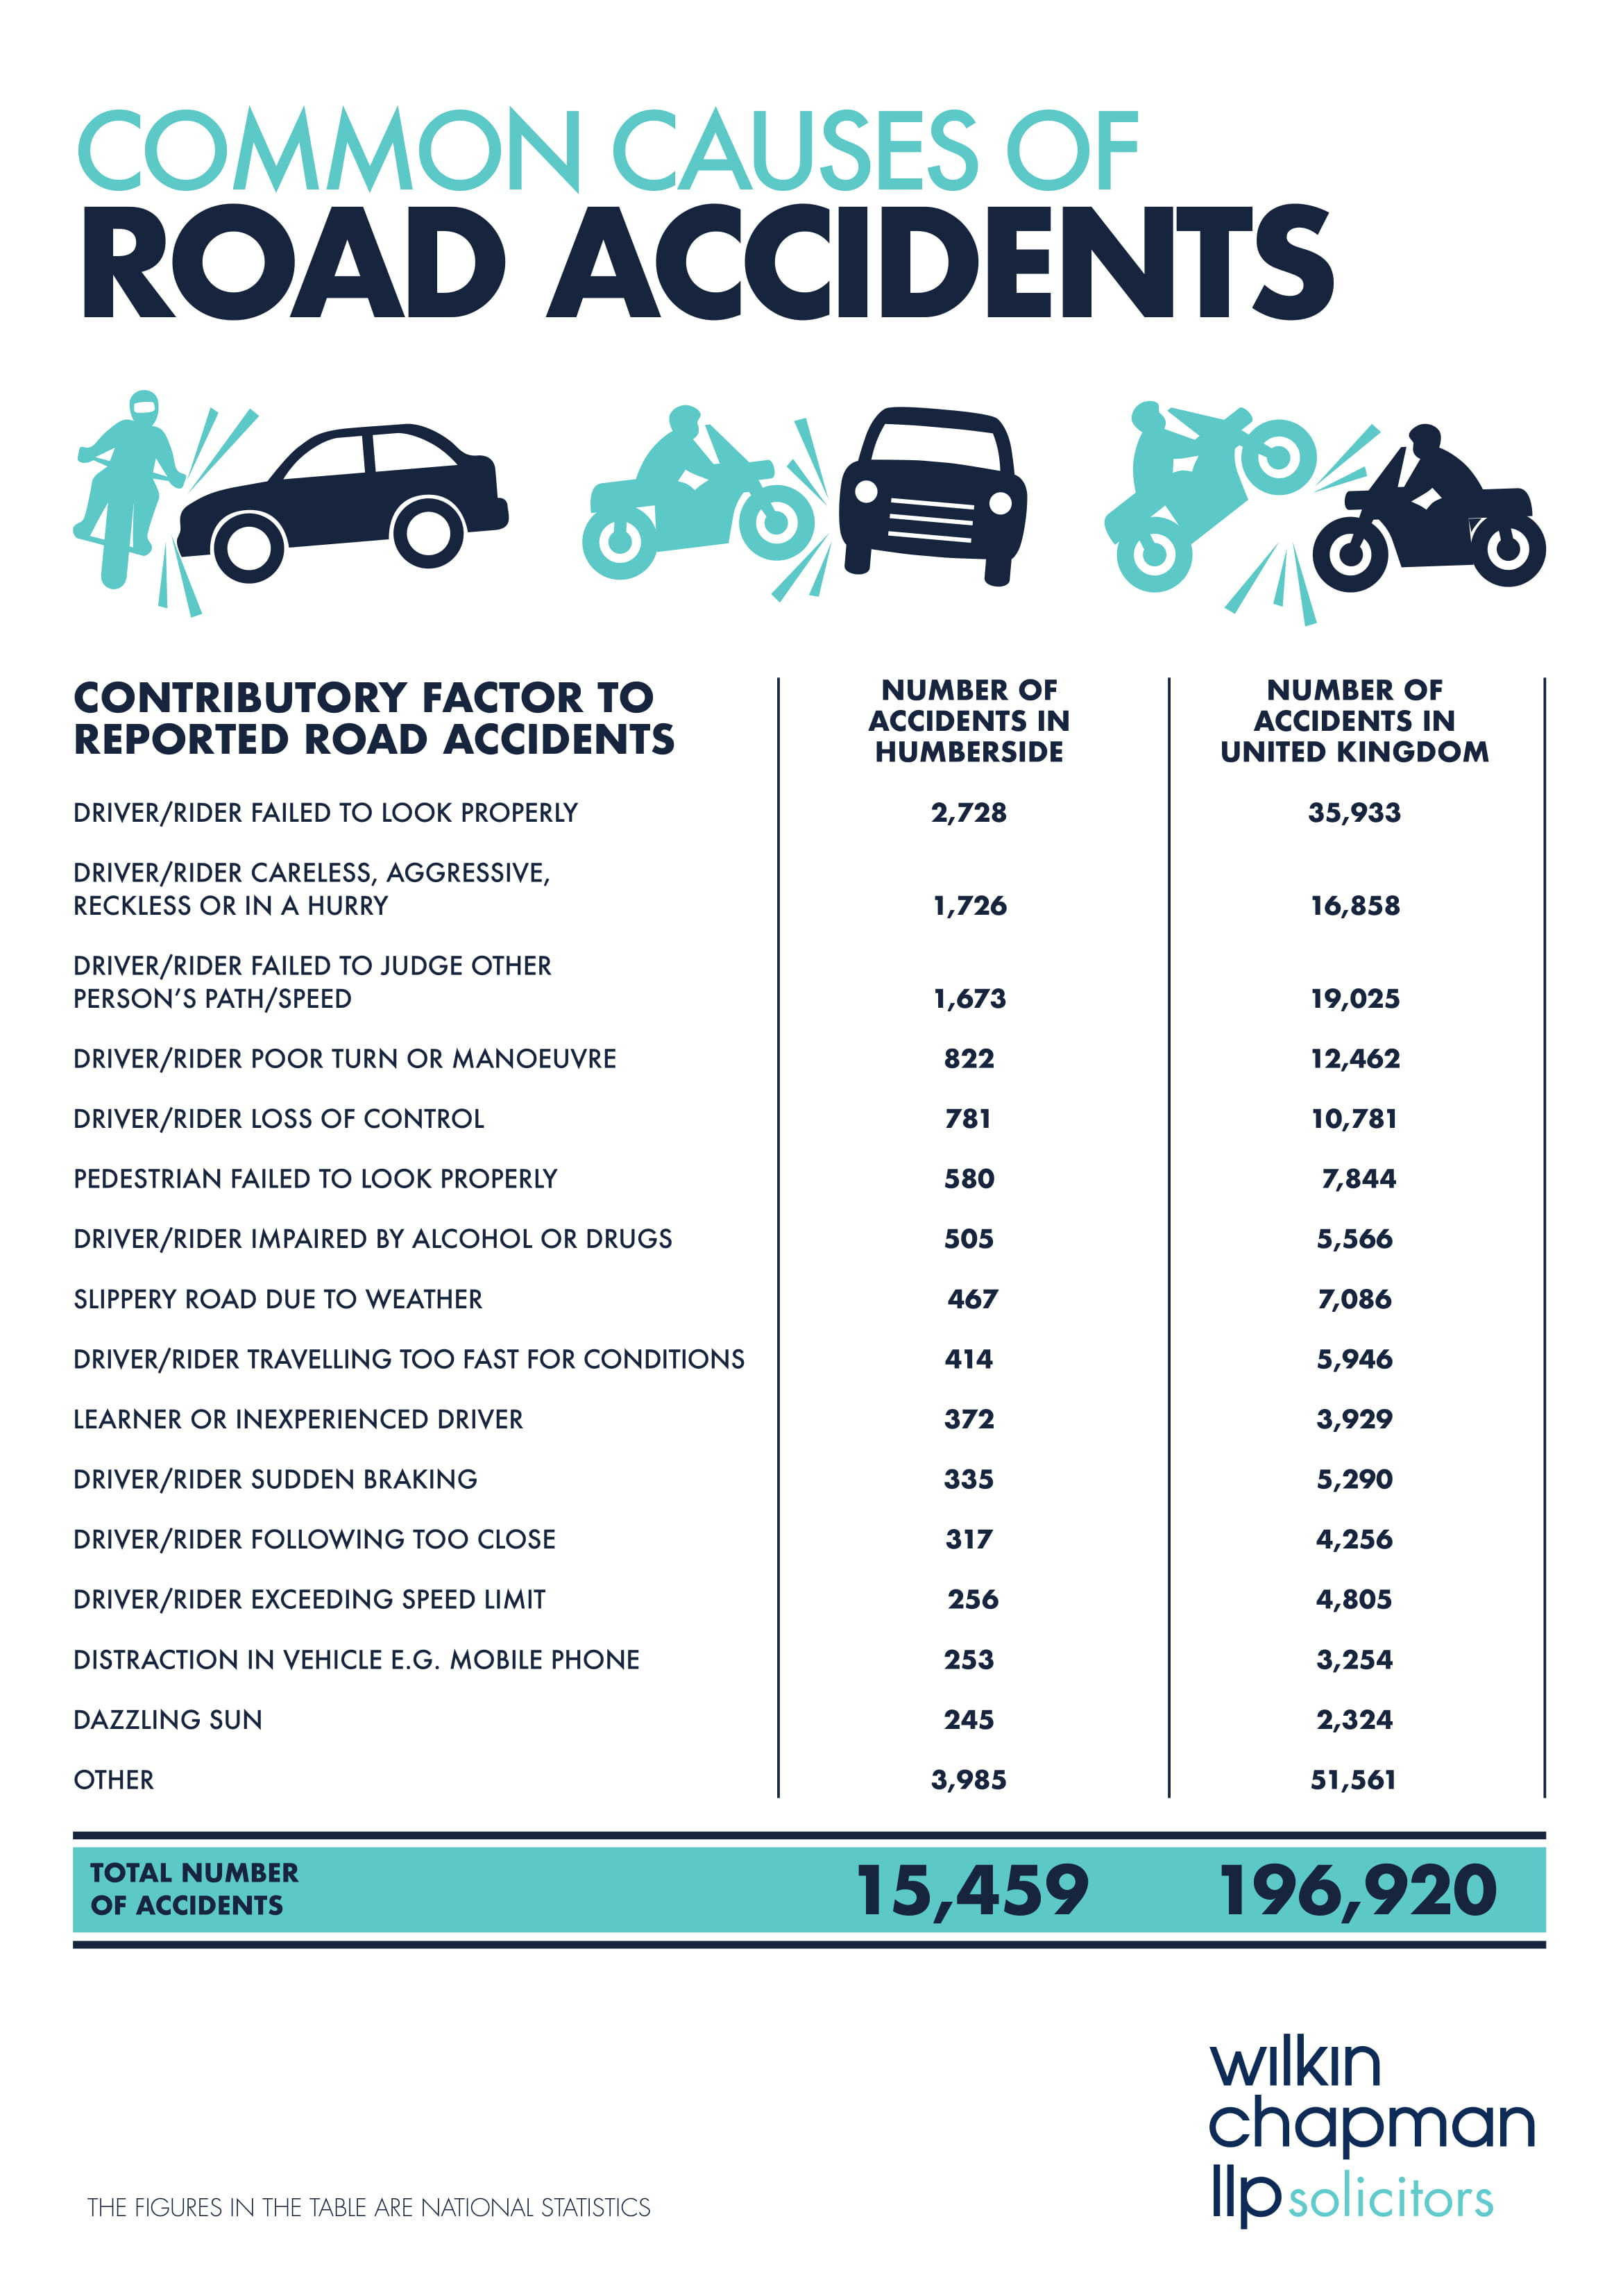 WC_CommonCausesofRoadAccidents_A3poster_infographic-1.jpg#asset:4659